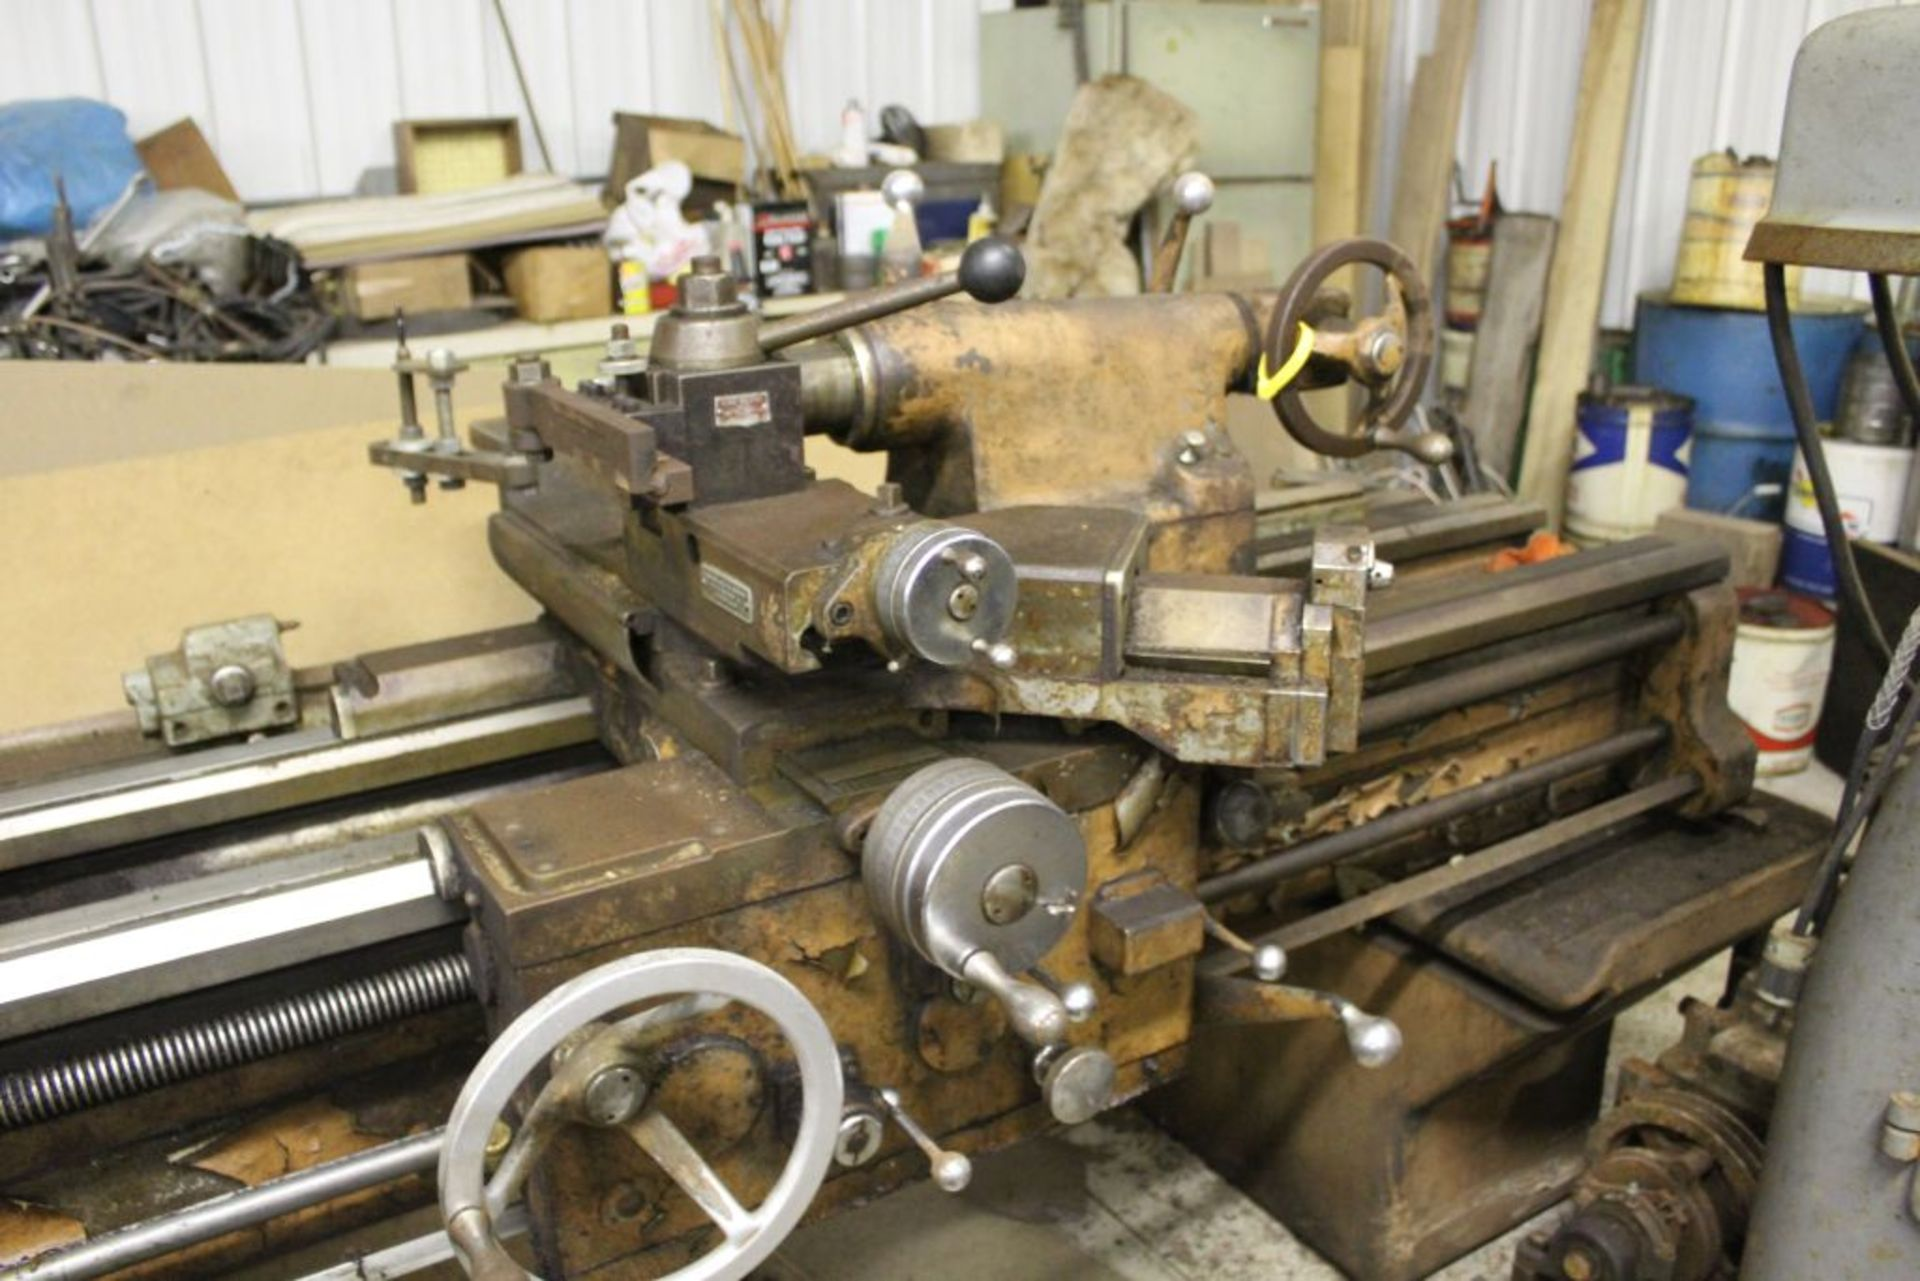 """1960 Monarch engine lathe, model 61, sn 44310-AT, 13 x 54, 20 1/2"""" swing, 79"""" bed, 55"""" center to - Image 3 of 8"""